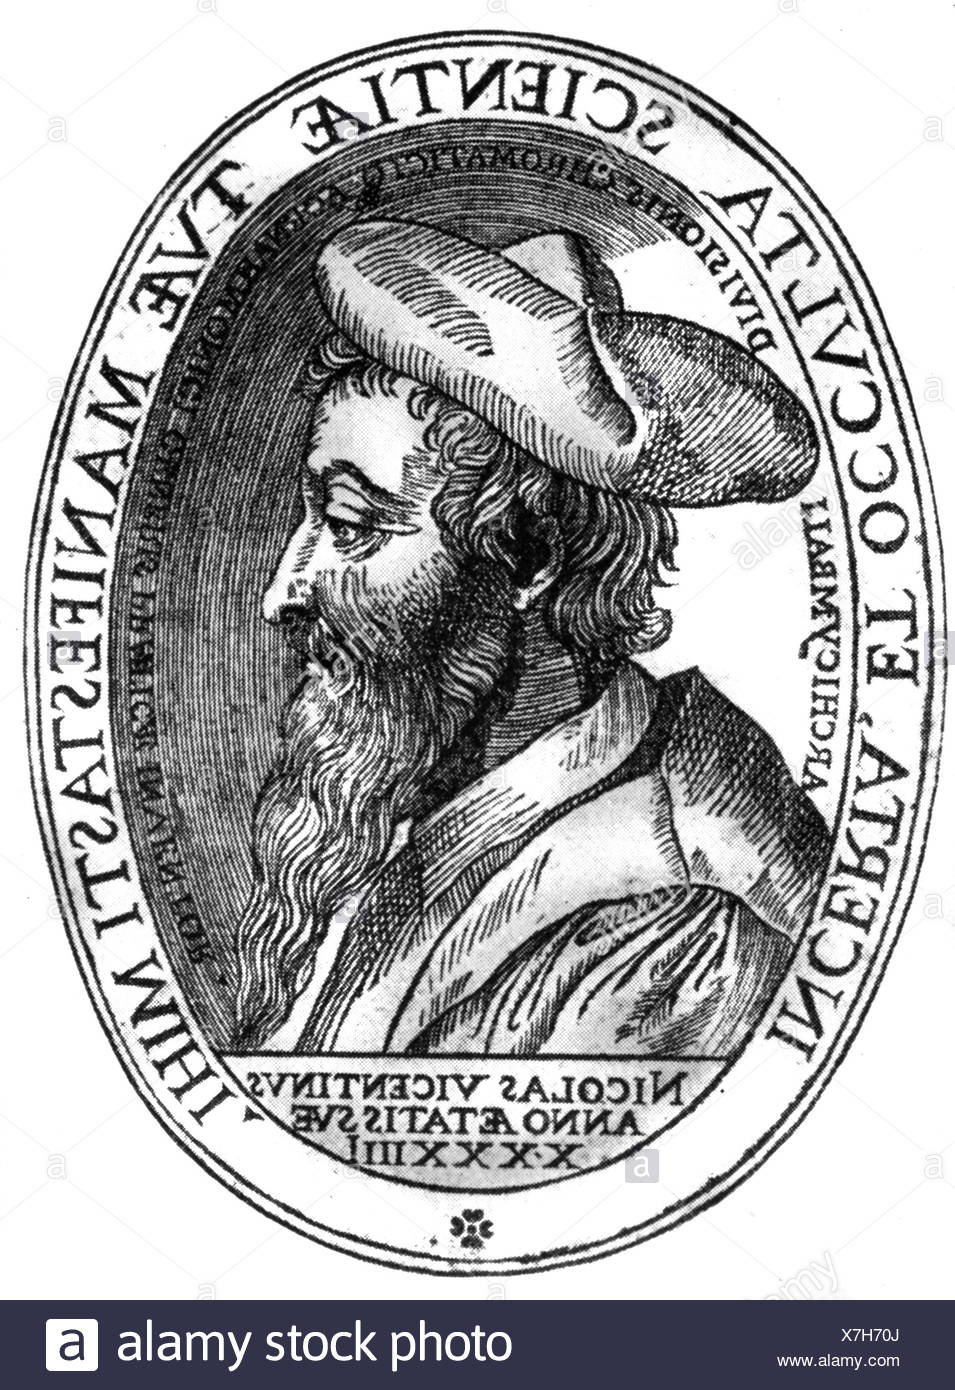 Vicentino, Nicola, 1511 - 1572, Italian composer, music theorist, portrait, side face, aged 44 years, after copper engraving, 1555, Artist's Copyright has not to be cleared - Stock Image